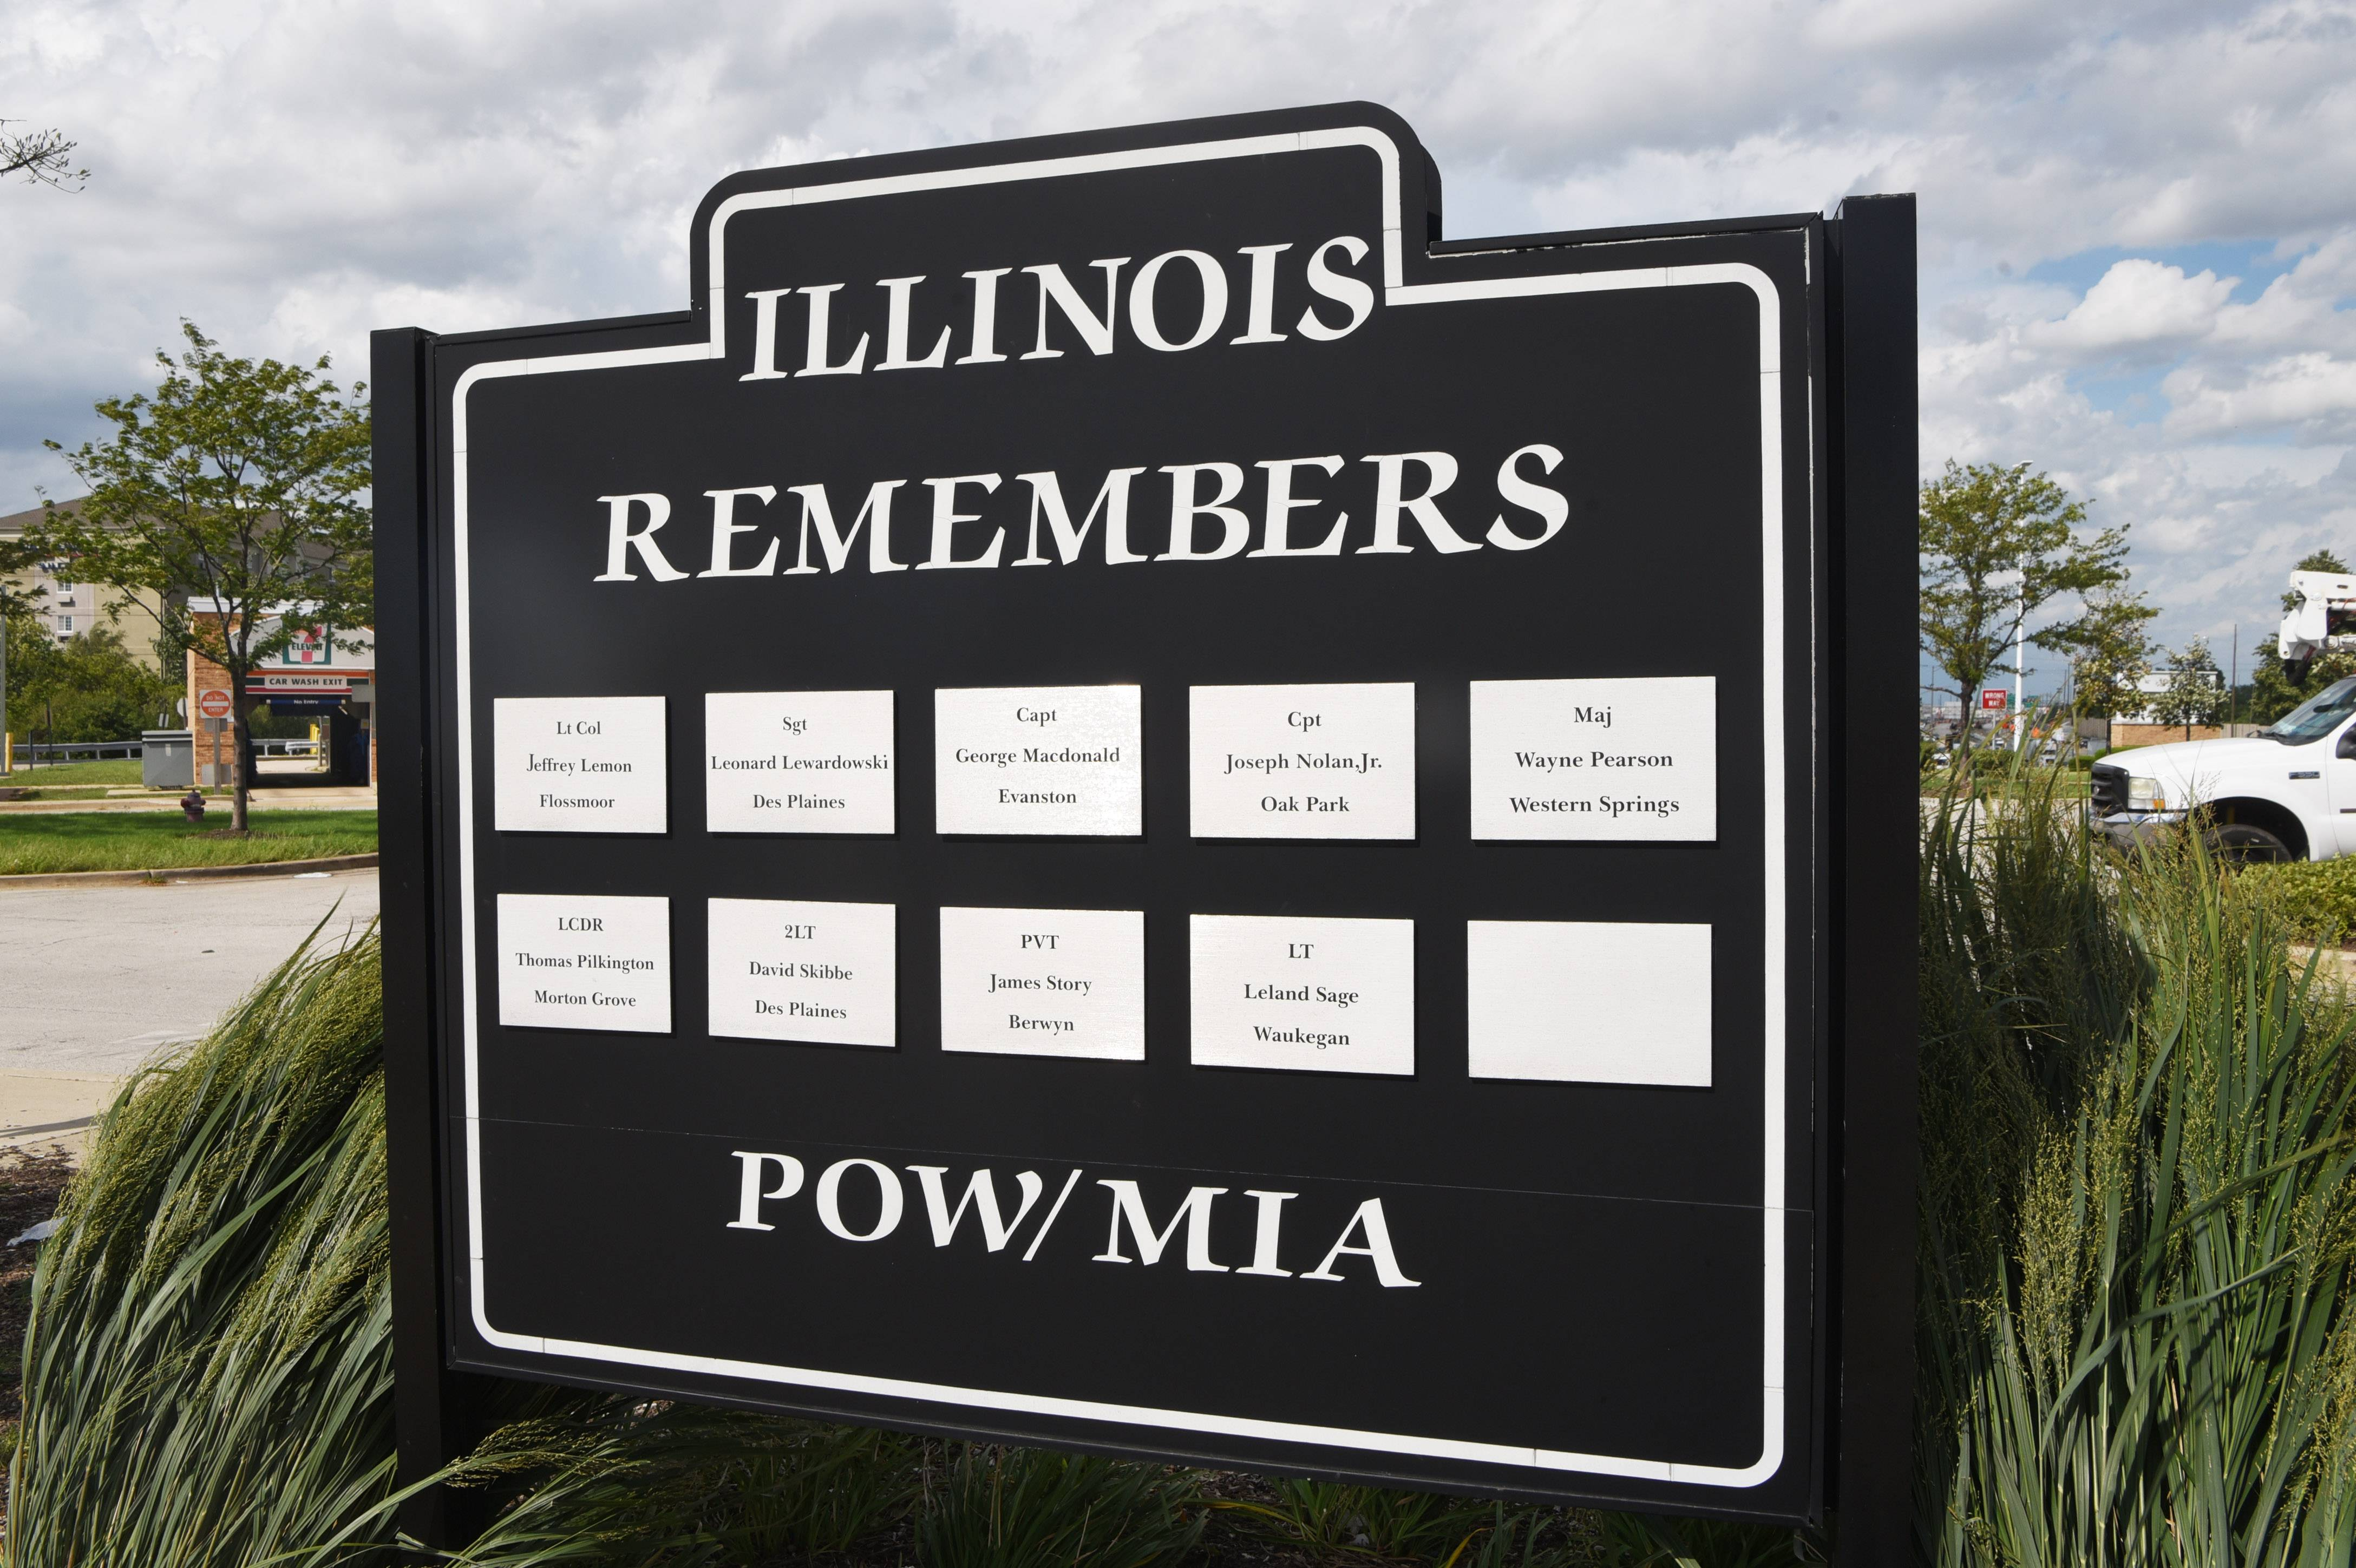 A monument dedicated to troops missing in action from the Vietnam War and World War II will remain at the O'Hare oasis after the glass pavilion is demolished to make way for new lanes on the Tri-State Tollway. It will be fenced off and protected during construction, officials said.